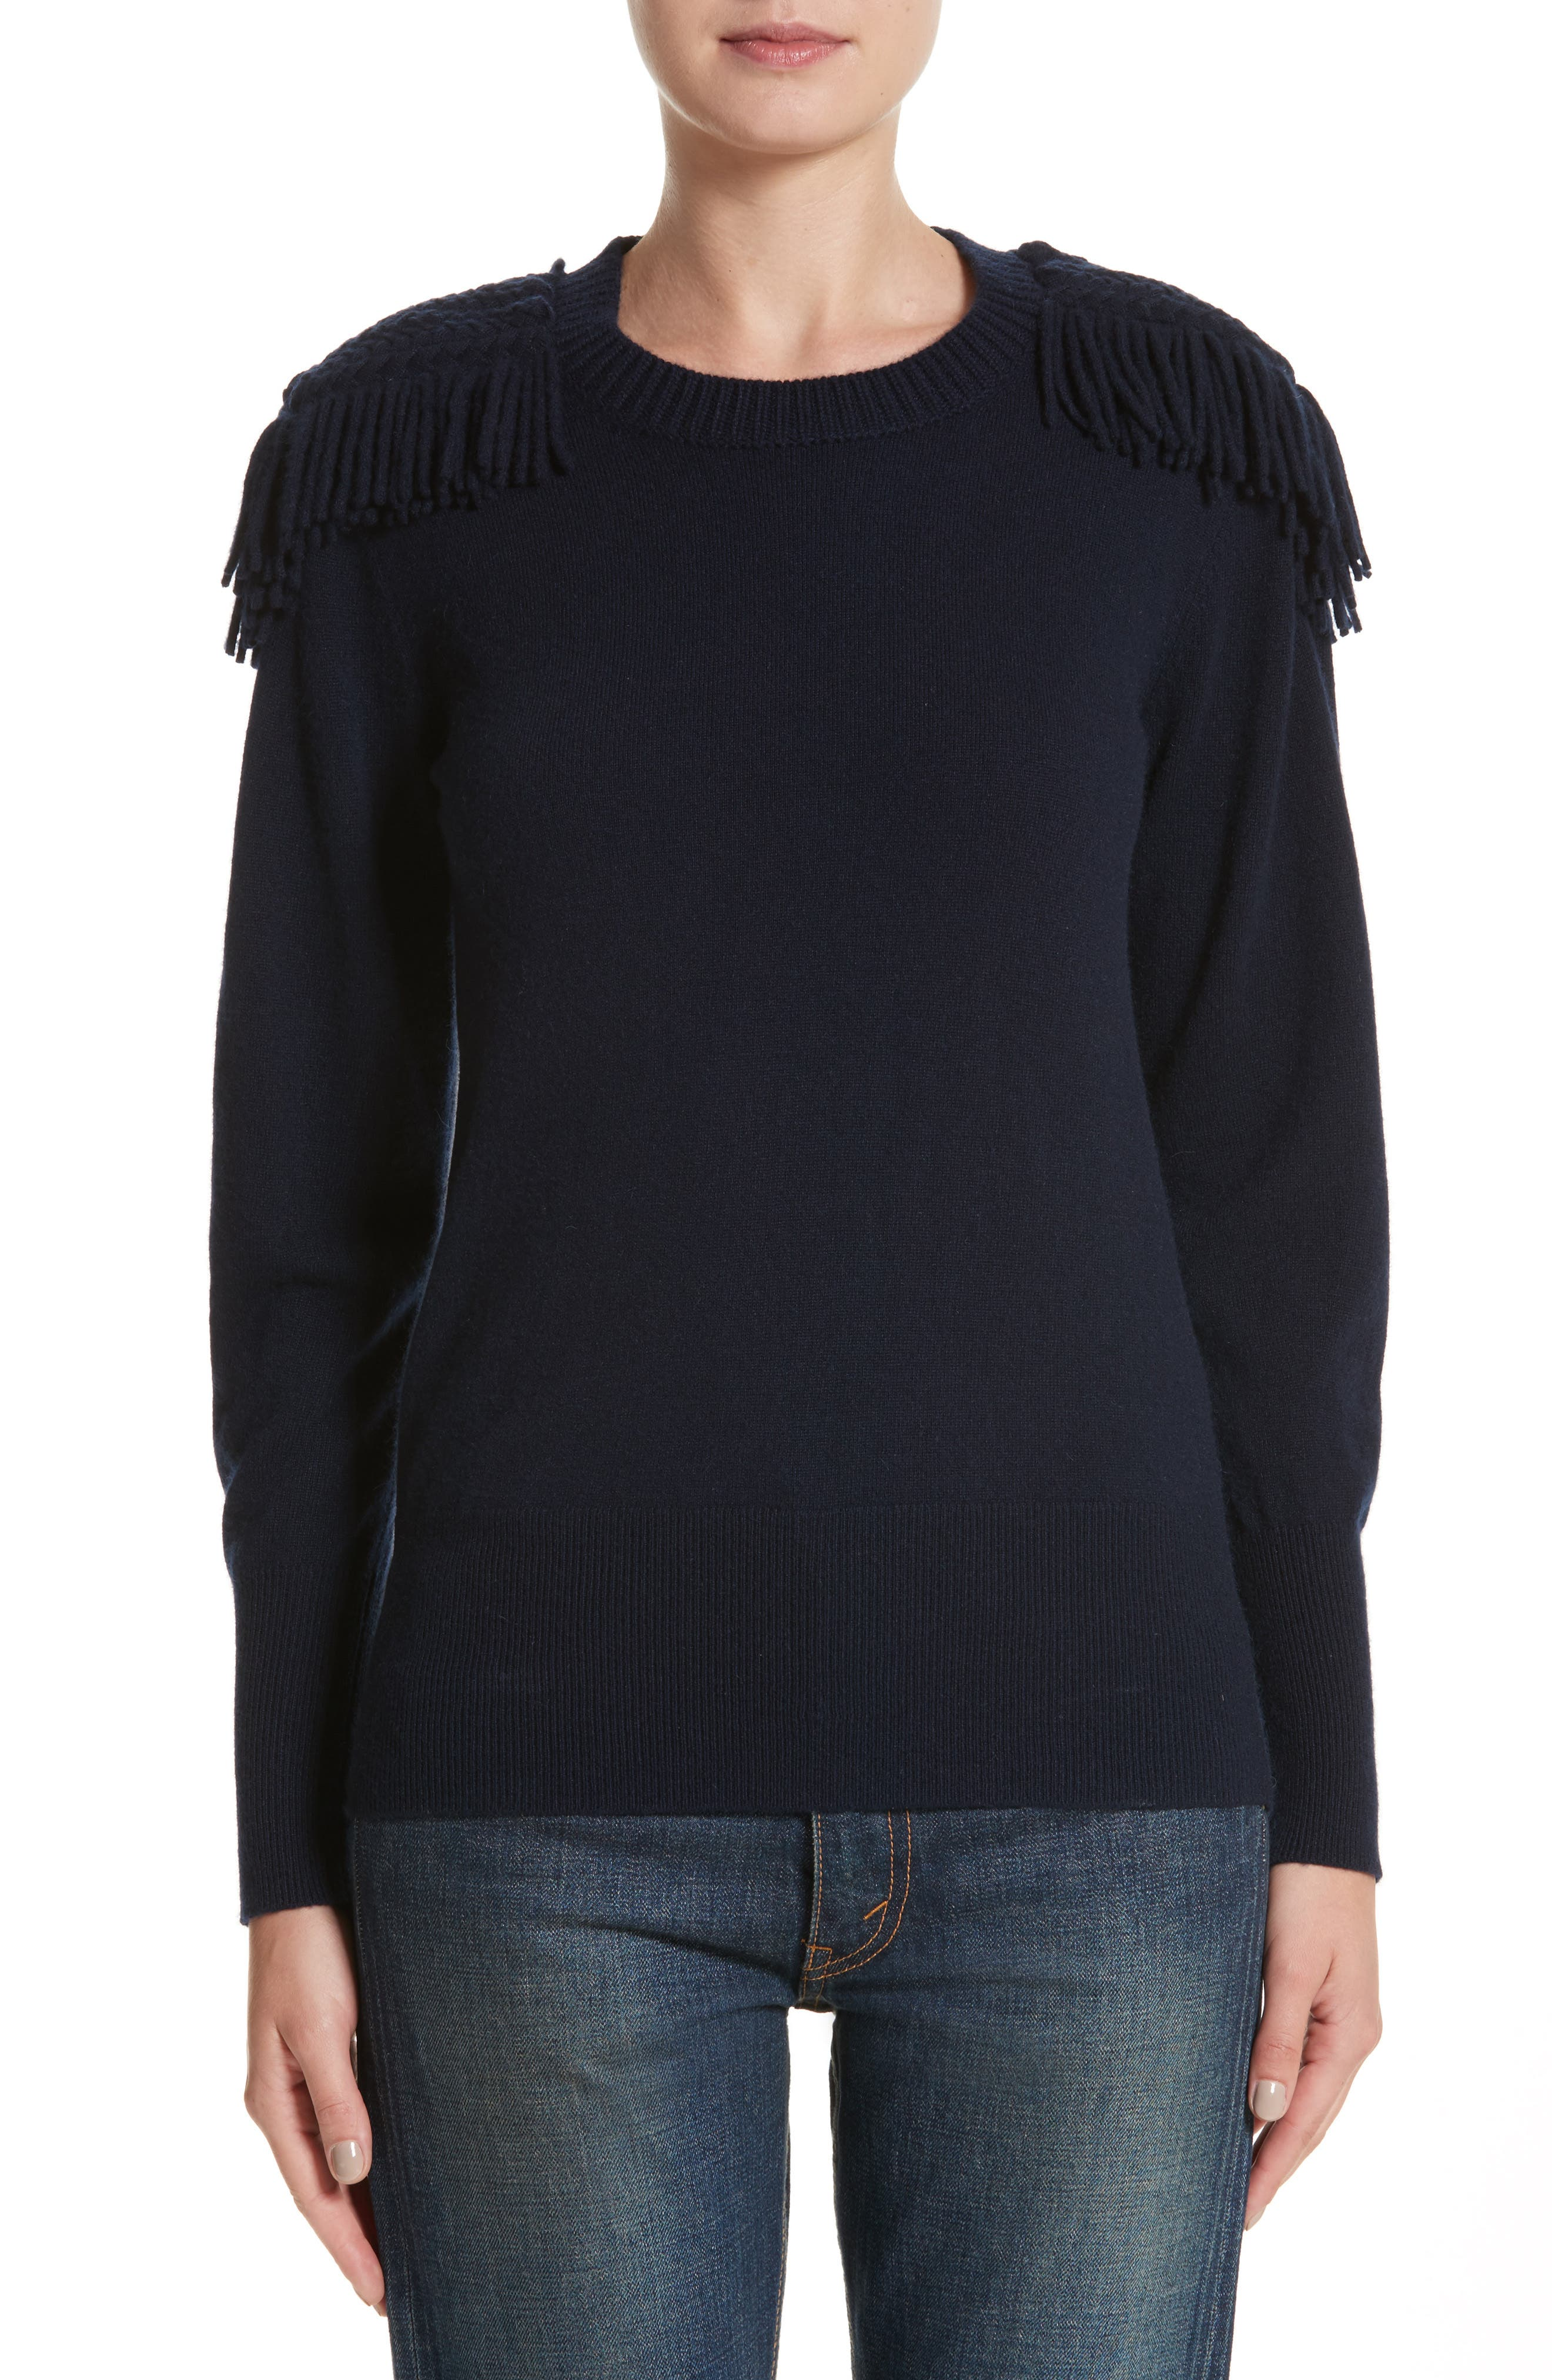 Burberry Livenza Wool & Cashmere Fringe Sweater